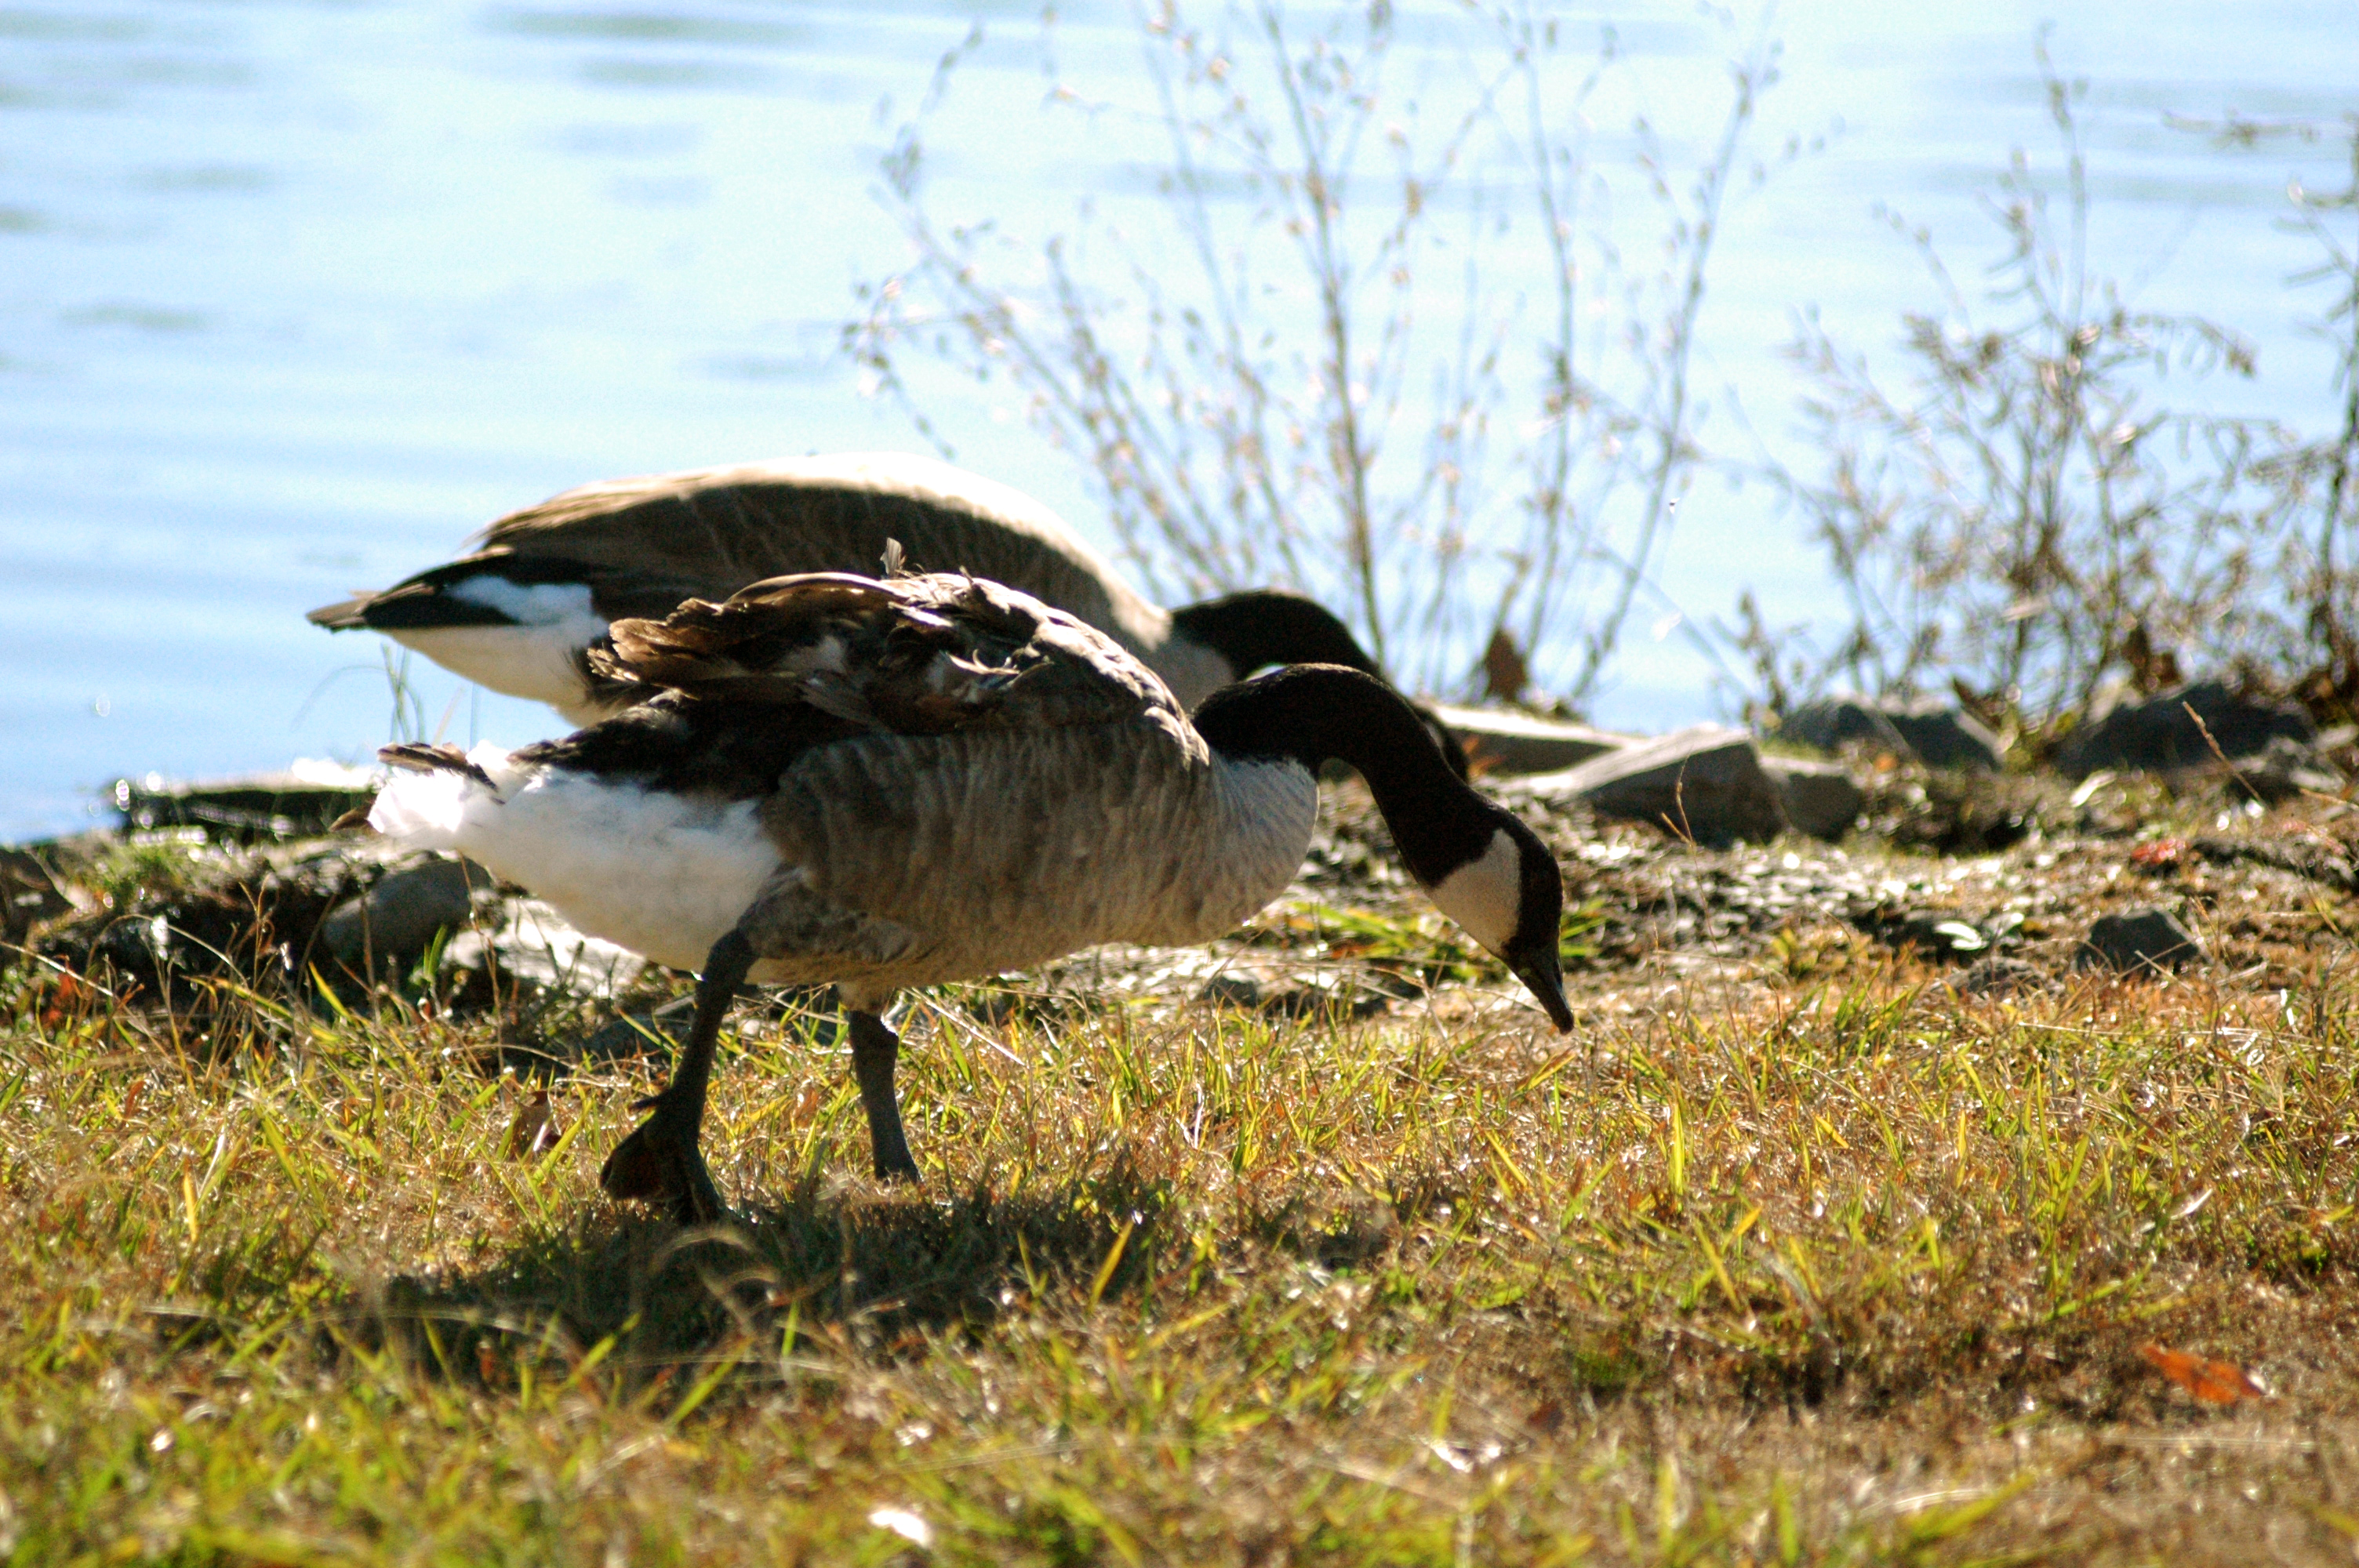 Foraging Geese